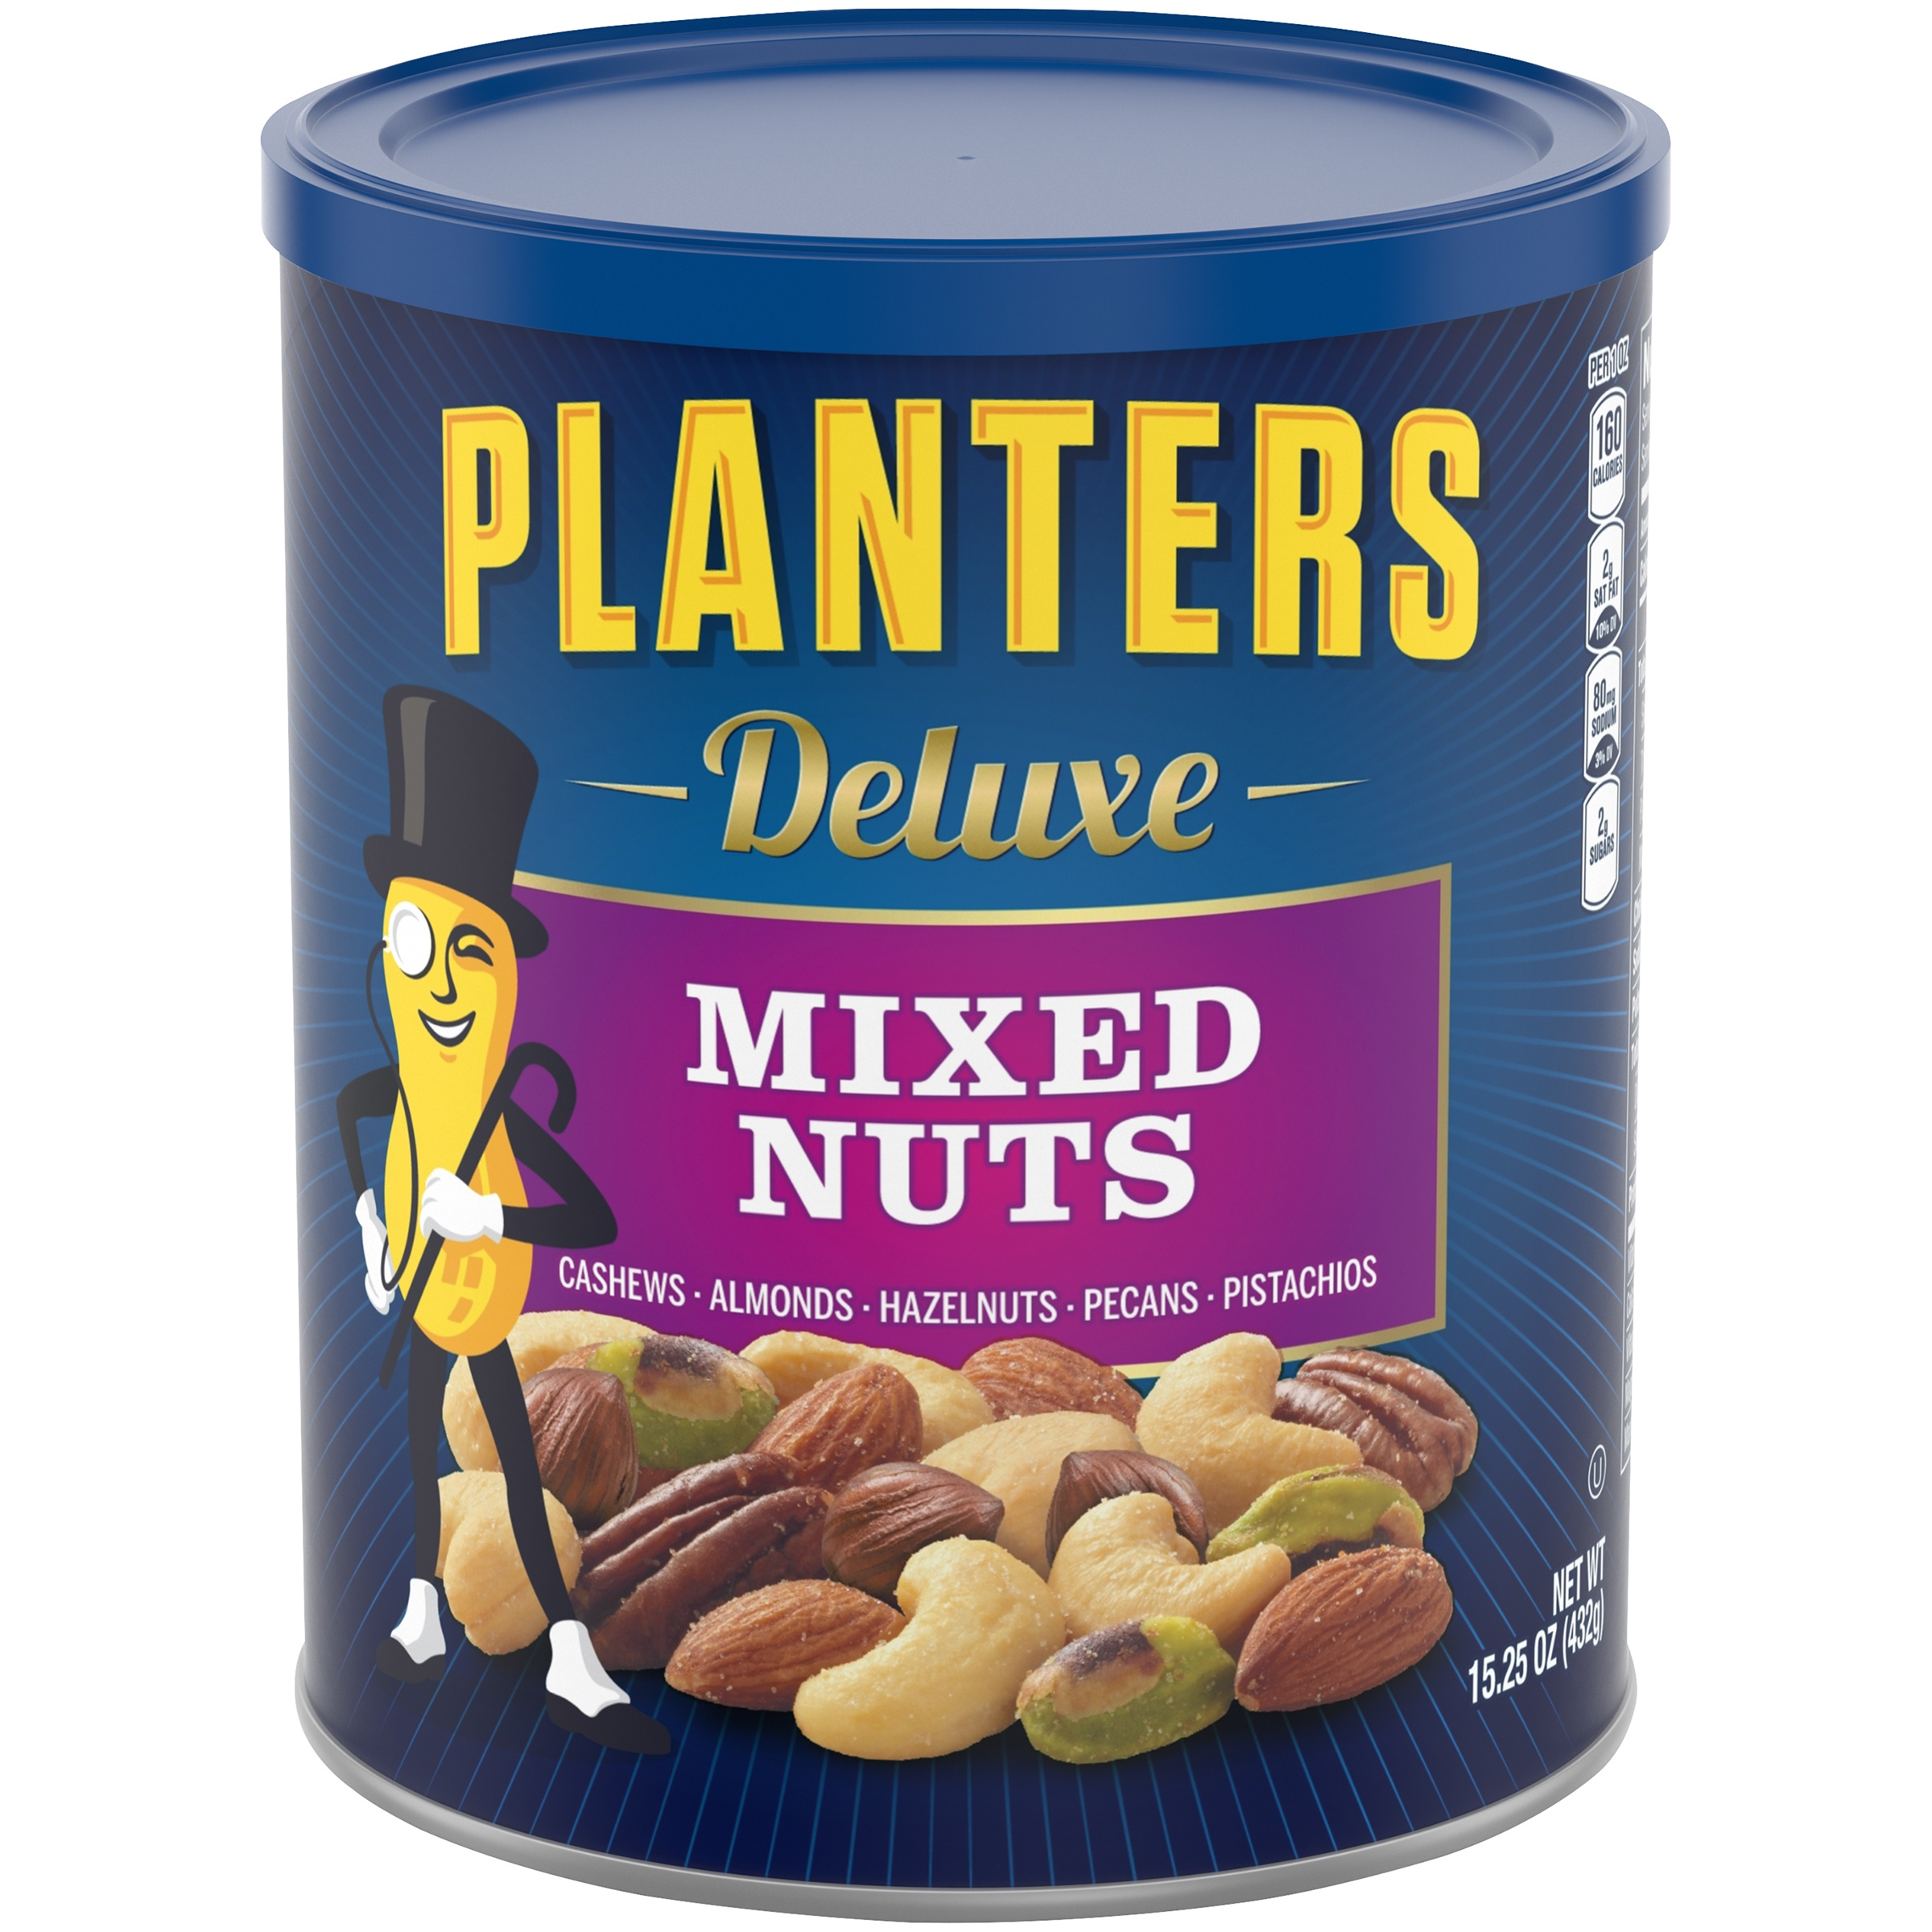 Planters Deluxe Mixed Nuts 15.25 oz. Canister